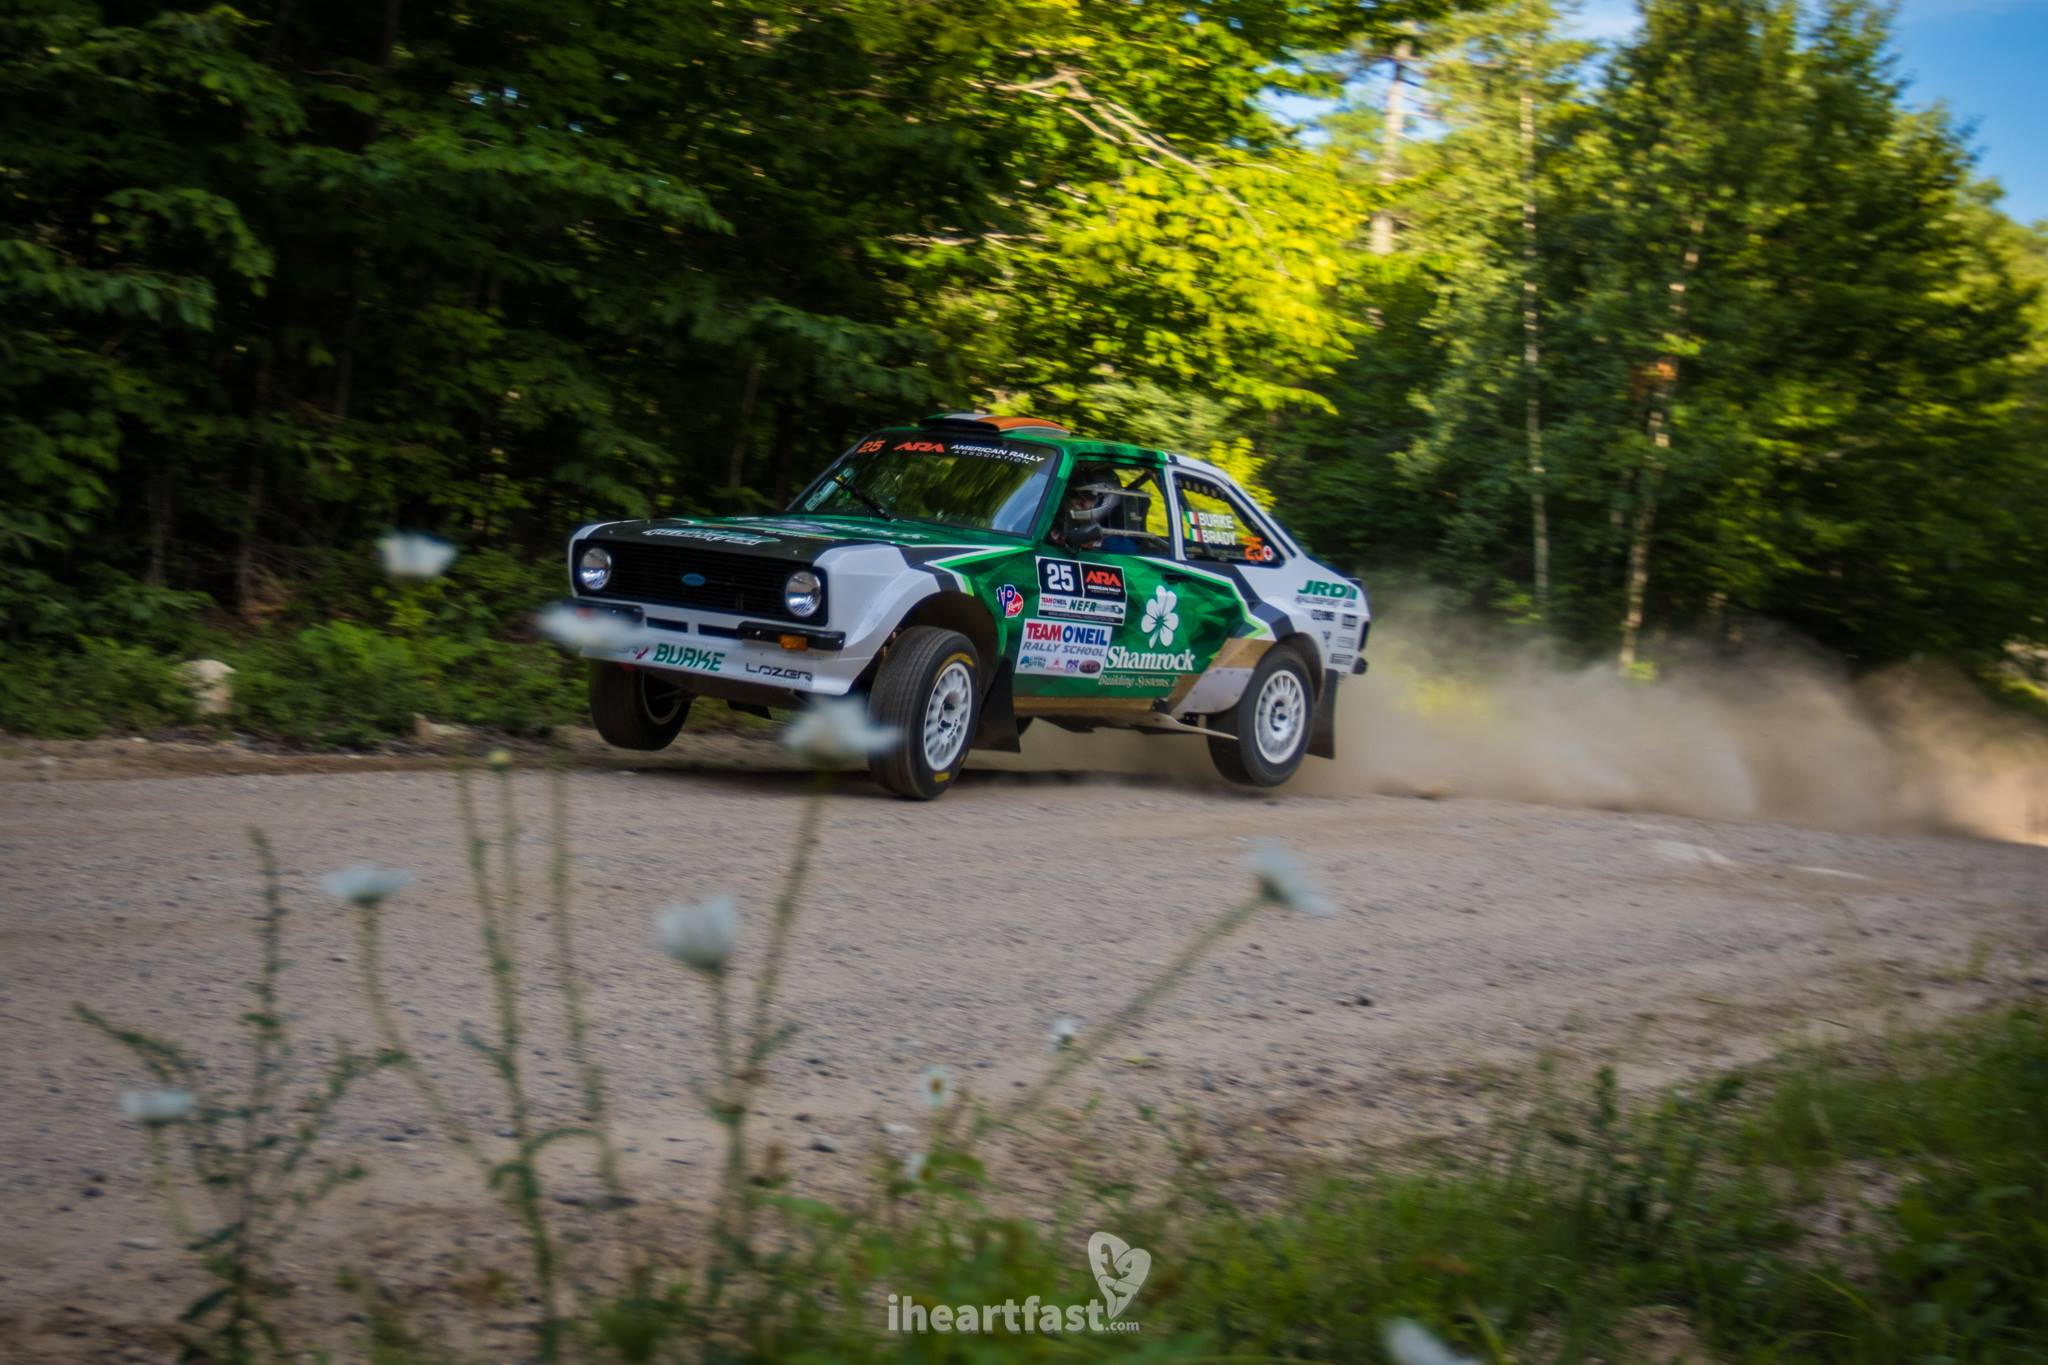 Seamus Burke and Martin Brady take their V6 Mustang powered MK2 Escort over a kick at NEFR